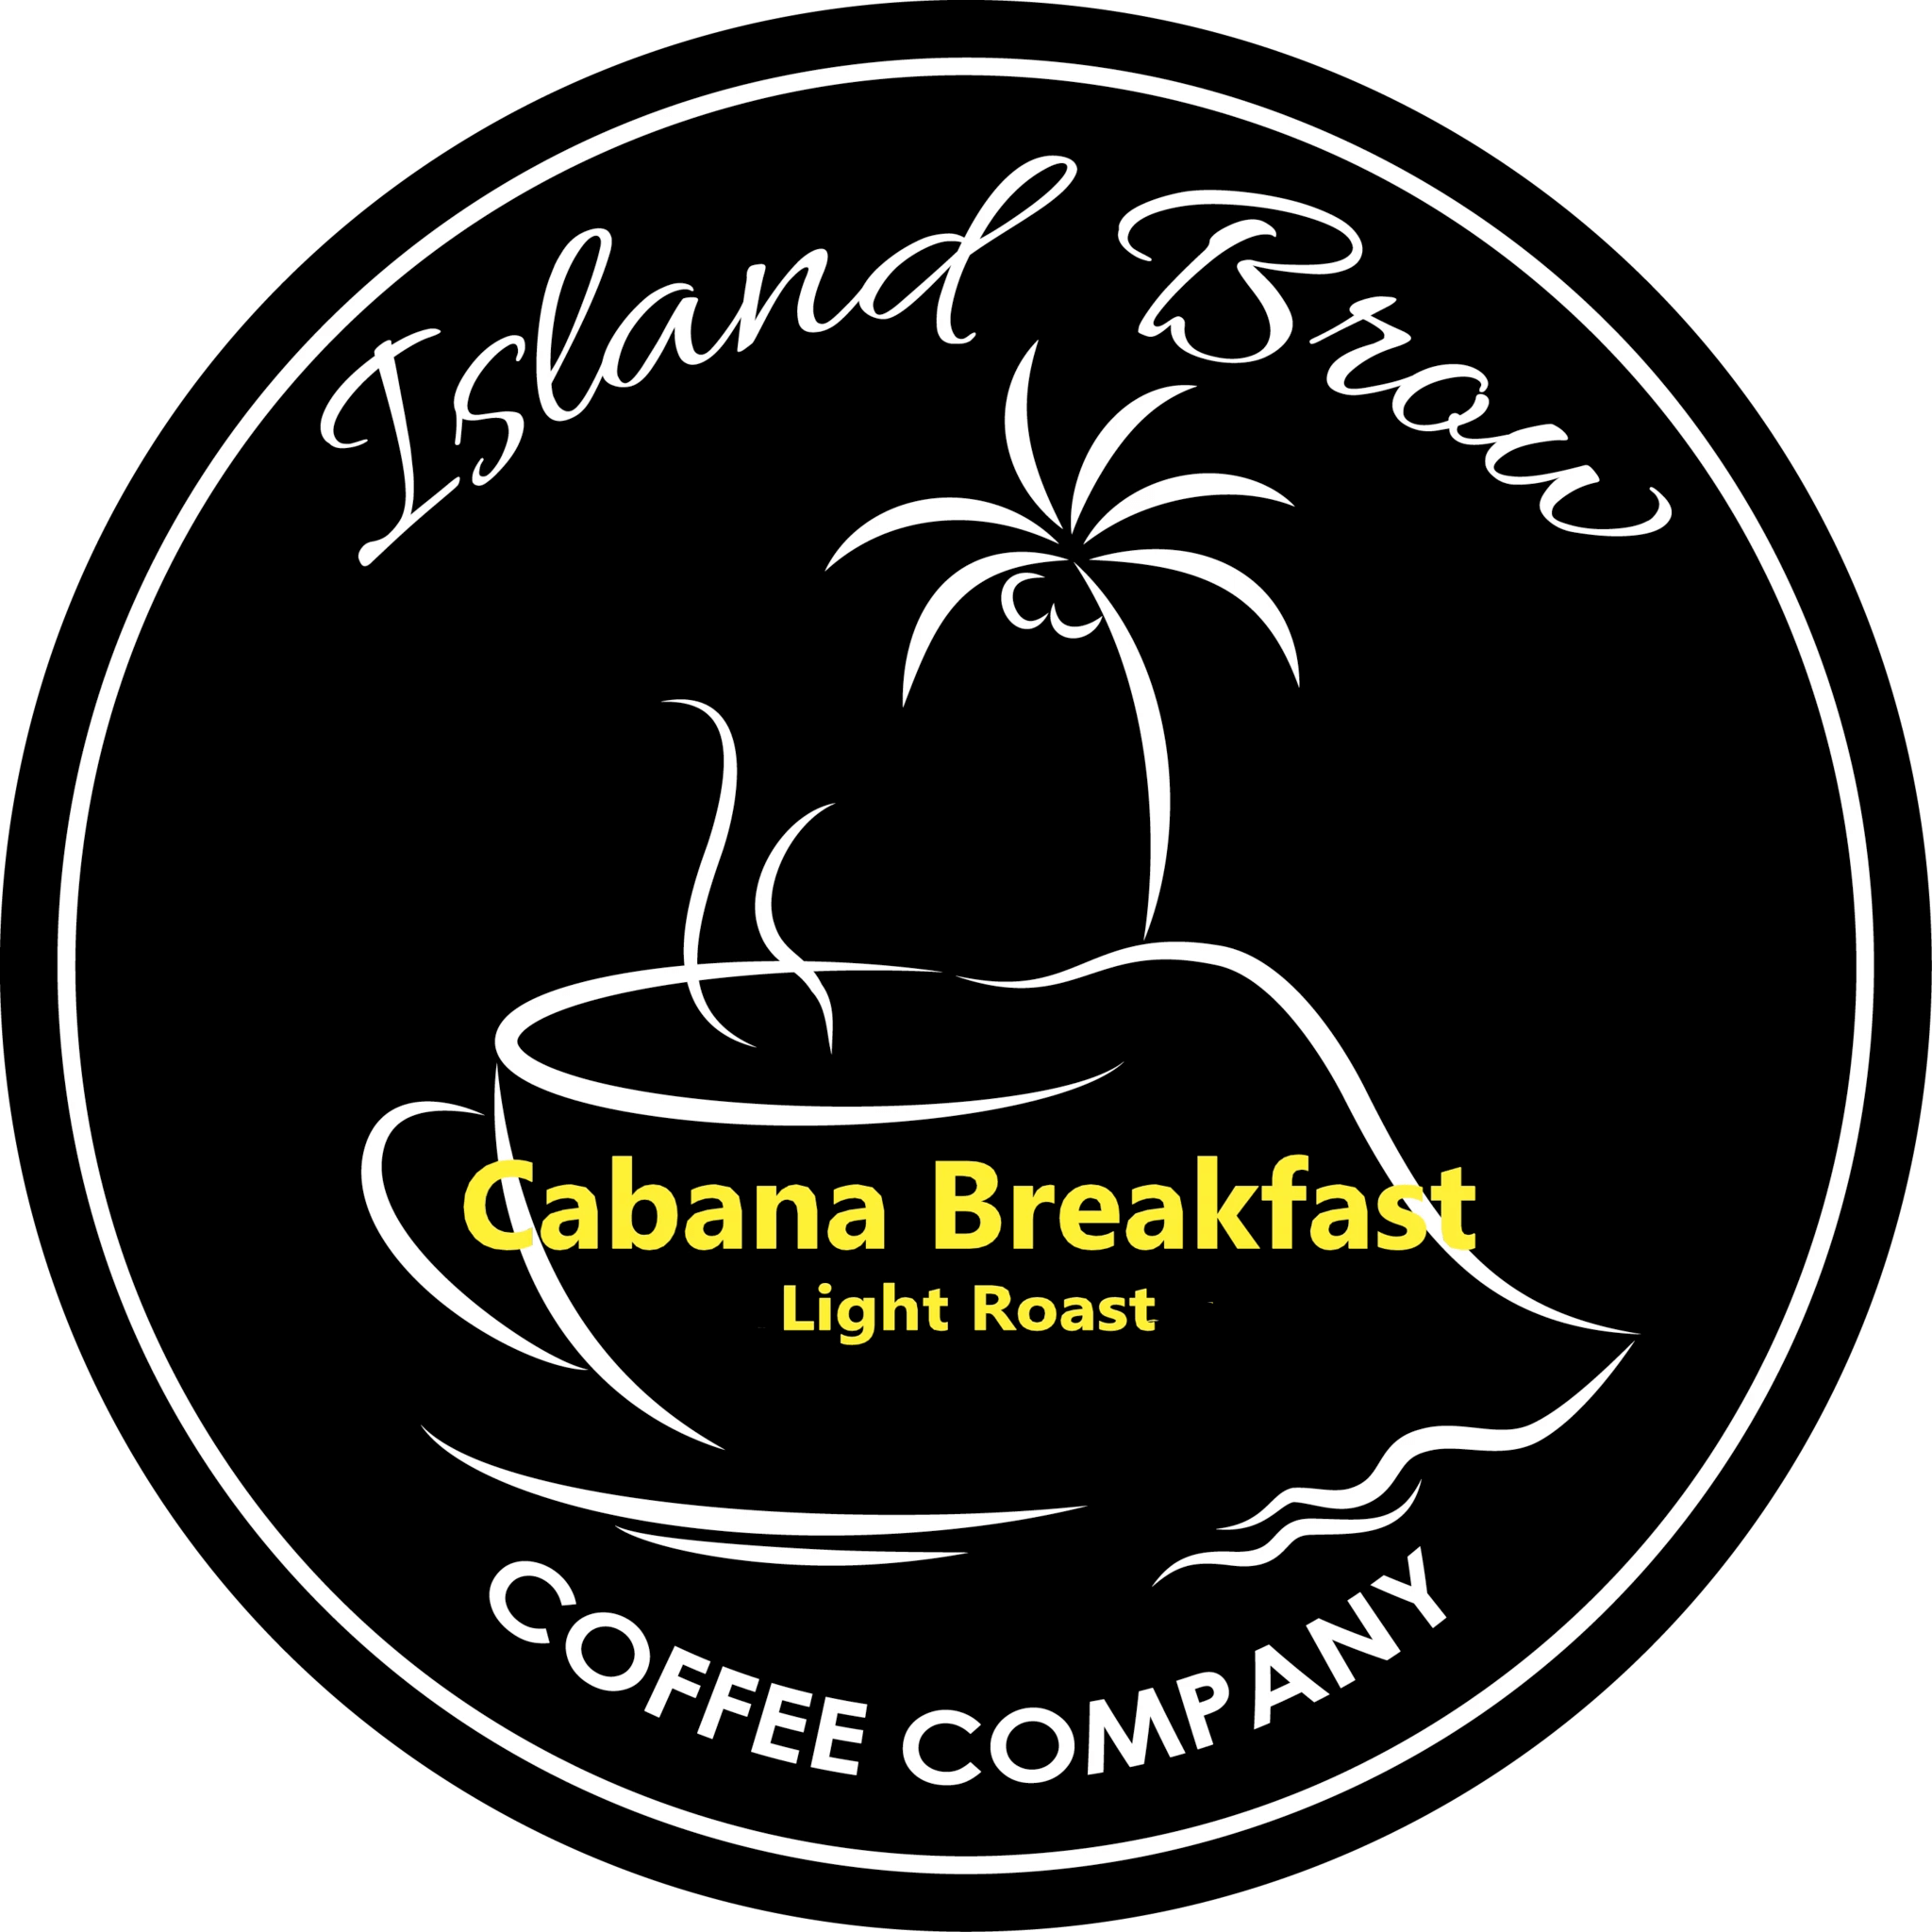 Cabana Breakfast Blend from Island Brow Coffee Company